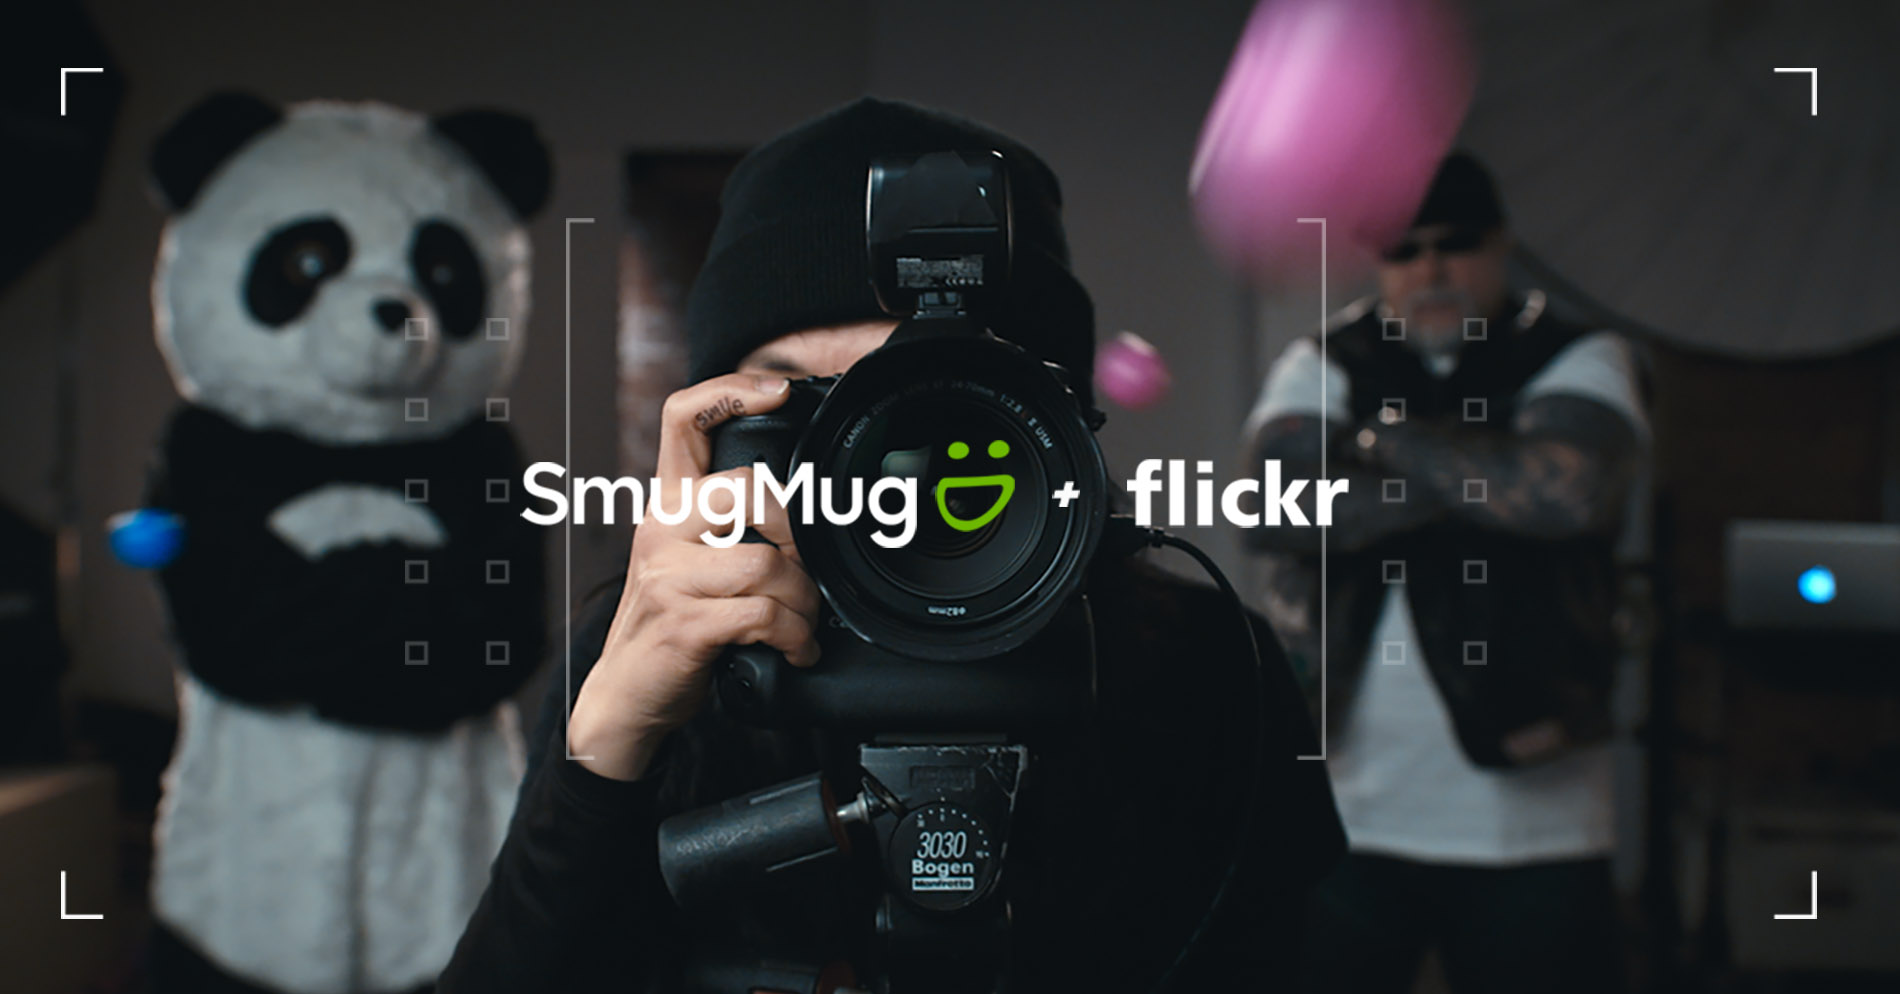 Flickr acquired by photo hosting service SmugMug